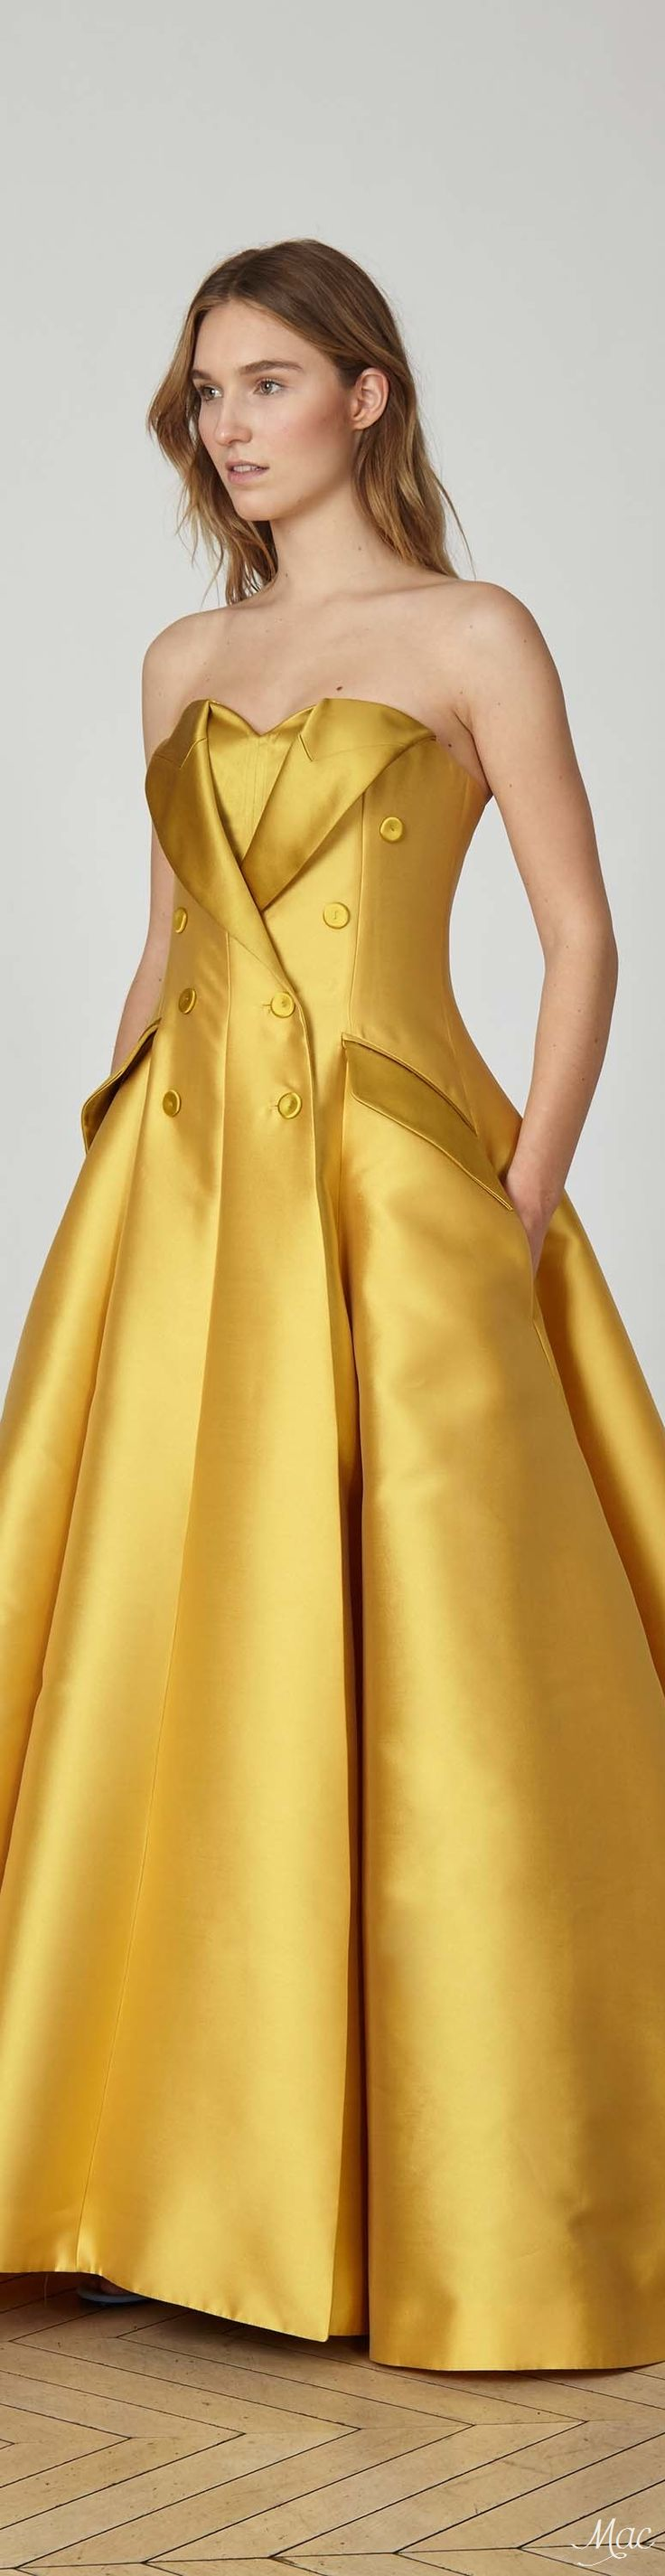 Pre-Fall 2017 Alexis Mabille